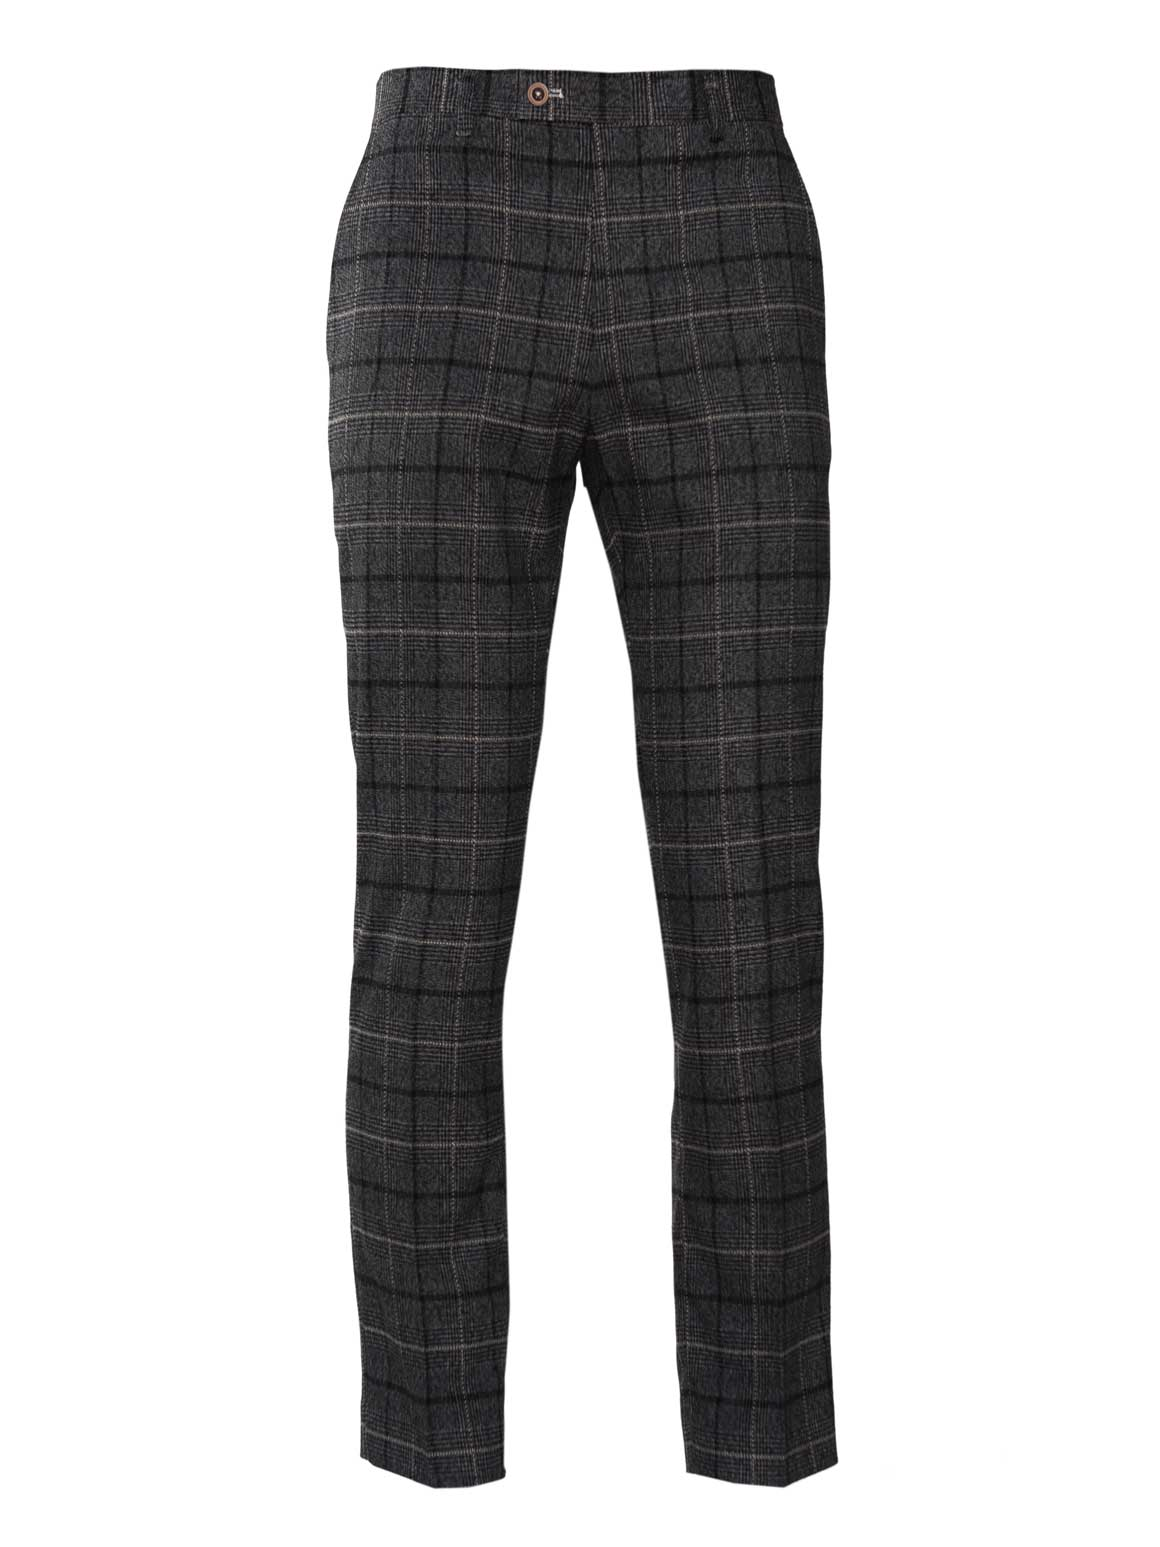 Downing Pant - Charcoal Running Plaid